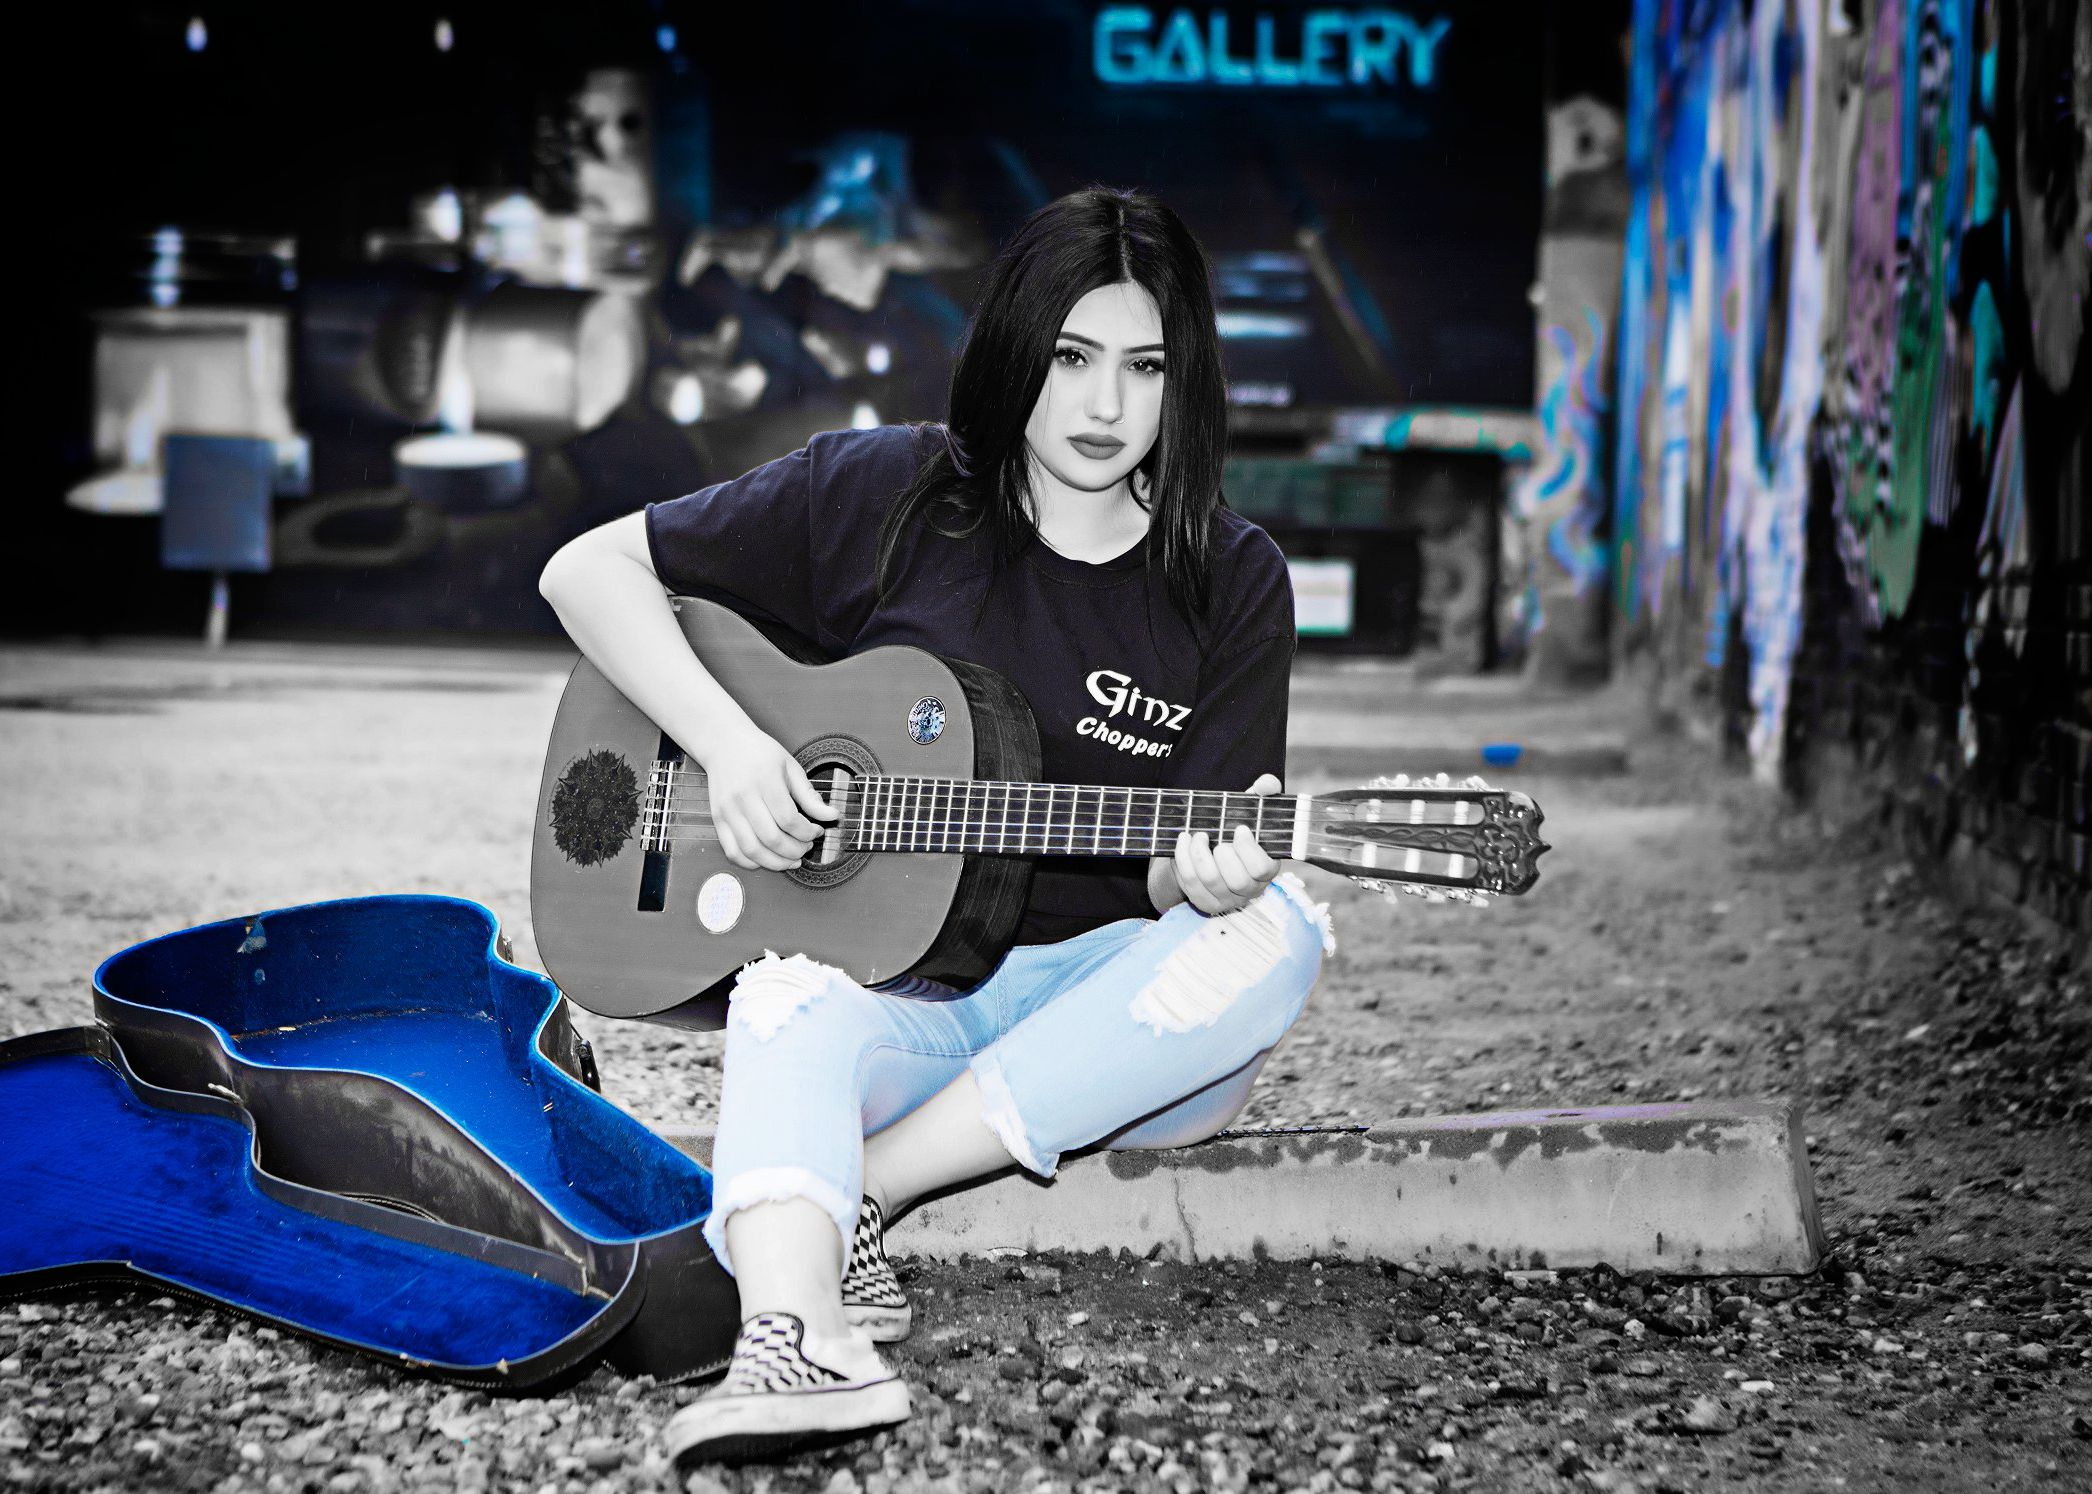 Woman sitting on concrete playing a guitar